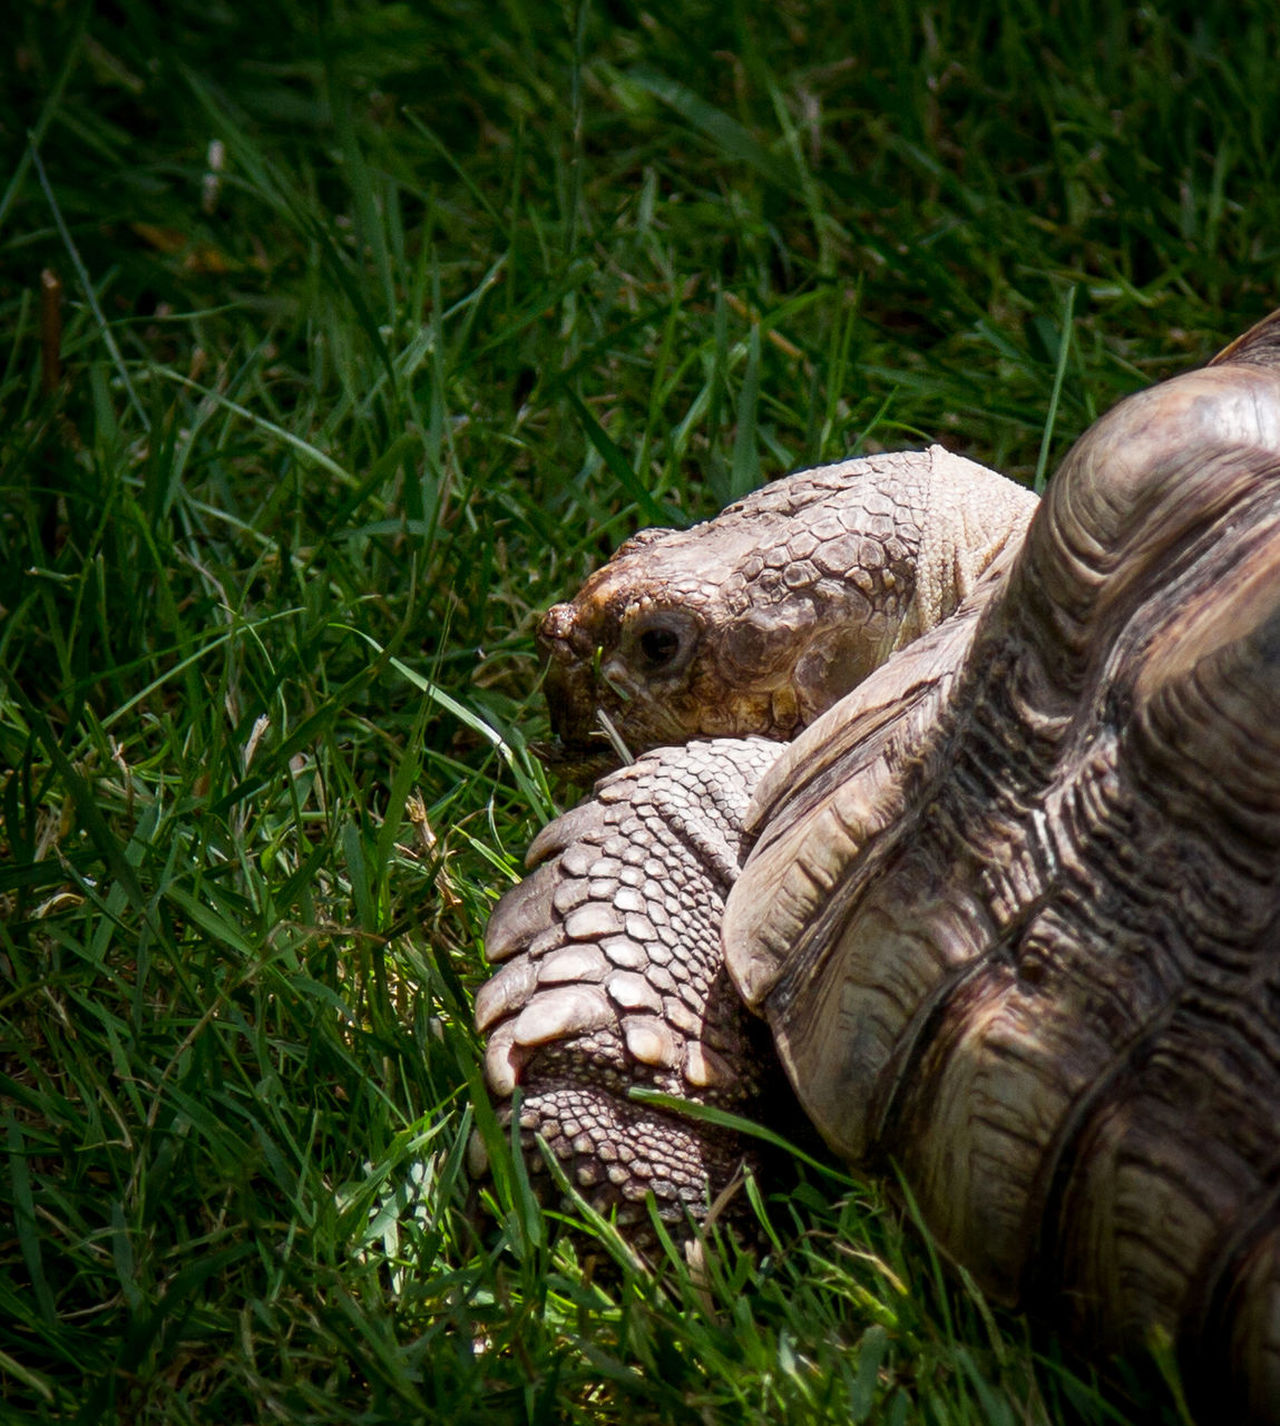 Animal Themes Animal Wildlife Animals In The Wild Close-up Day Field Grass Green Color Mammal Nature No People One Animal Outdoors Reptile Tortoise Tortoise Shell Wildlife